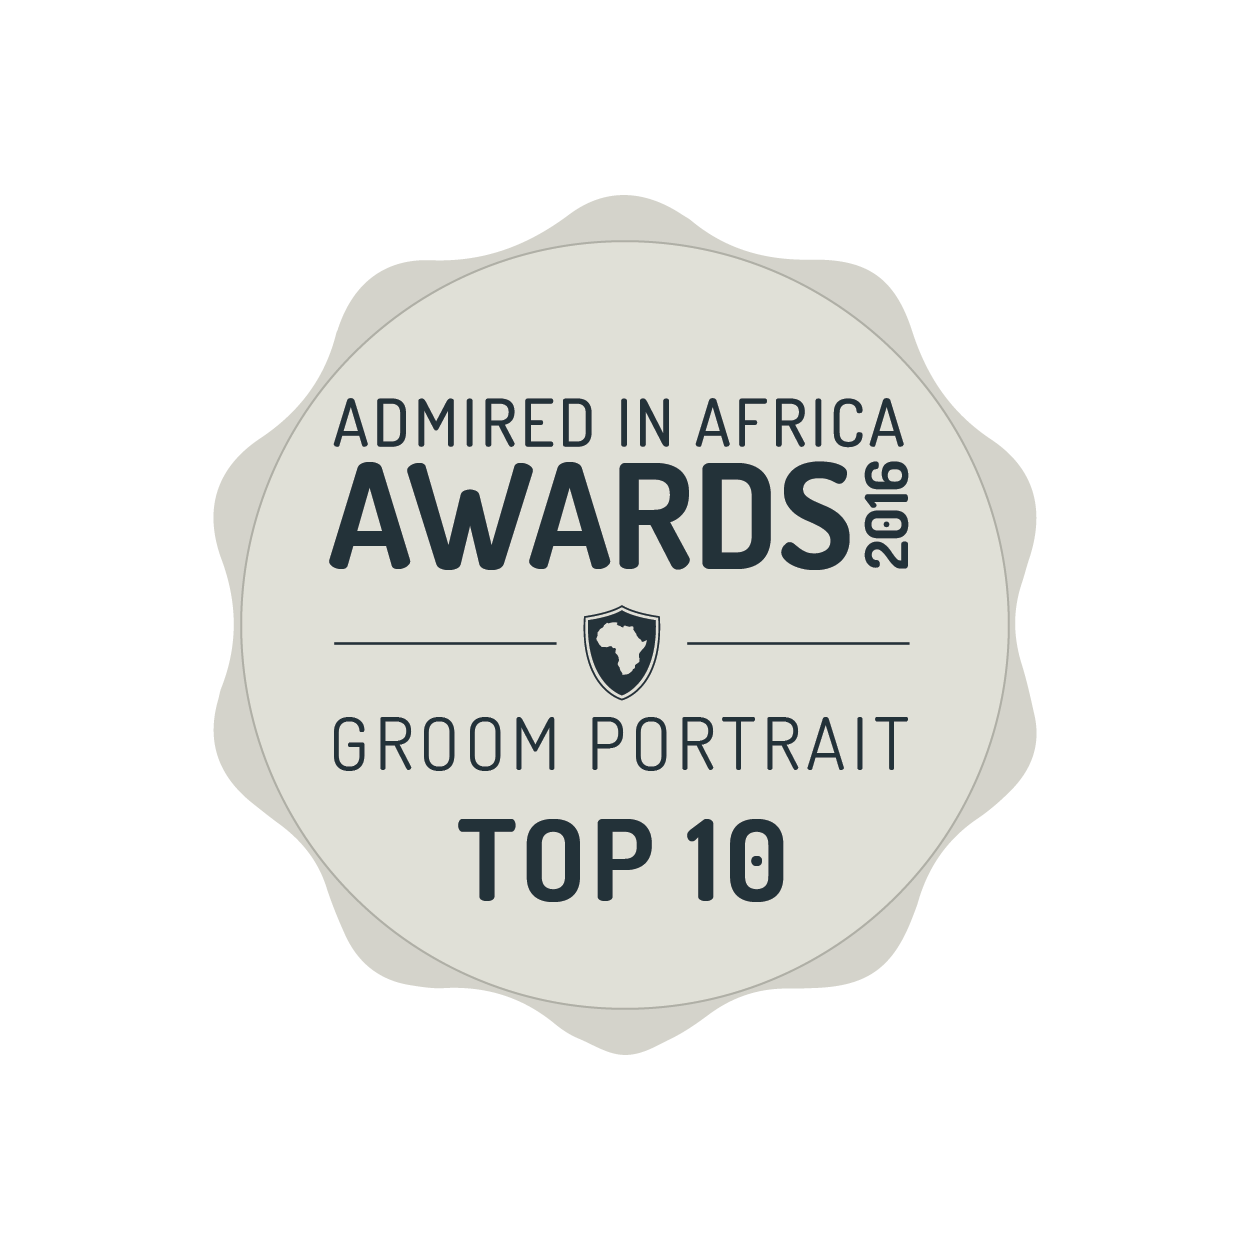 Admired in Africa top10